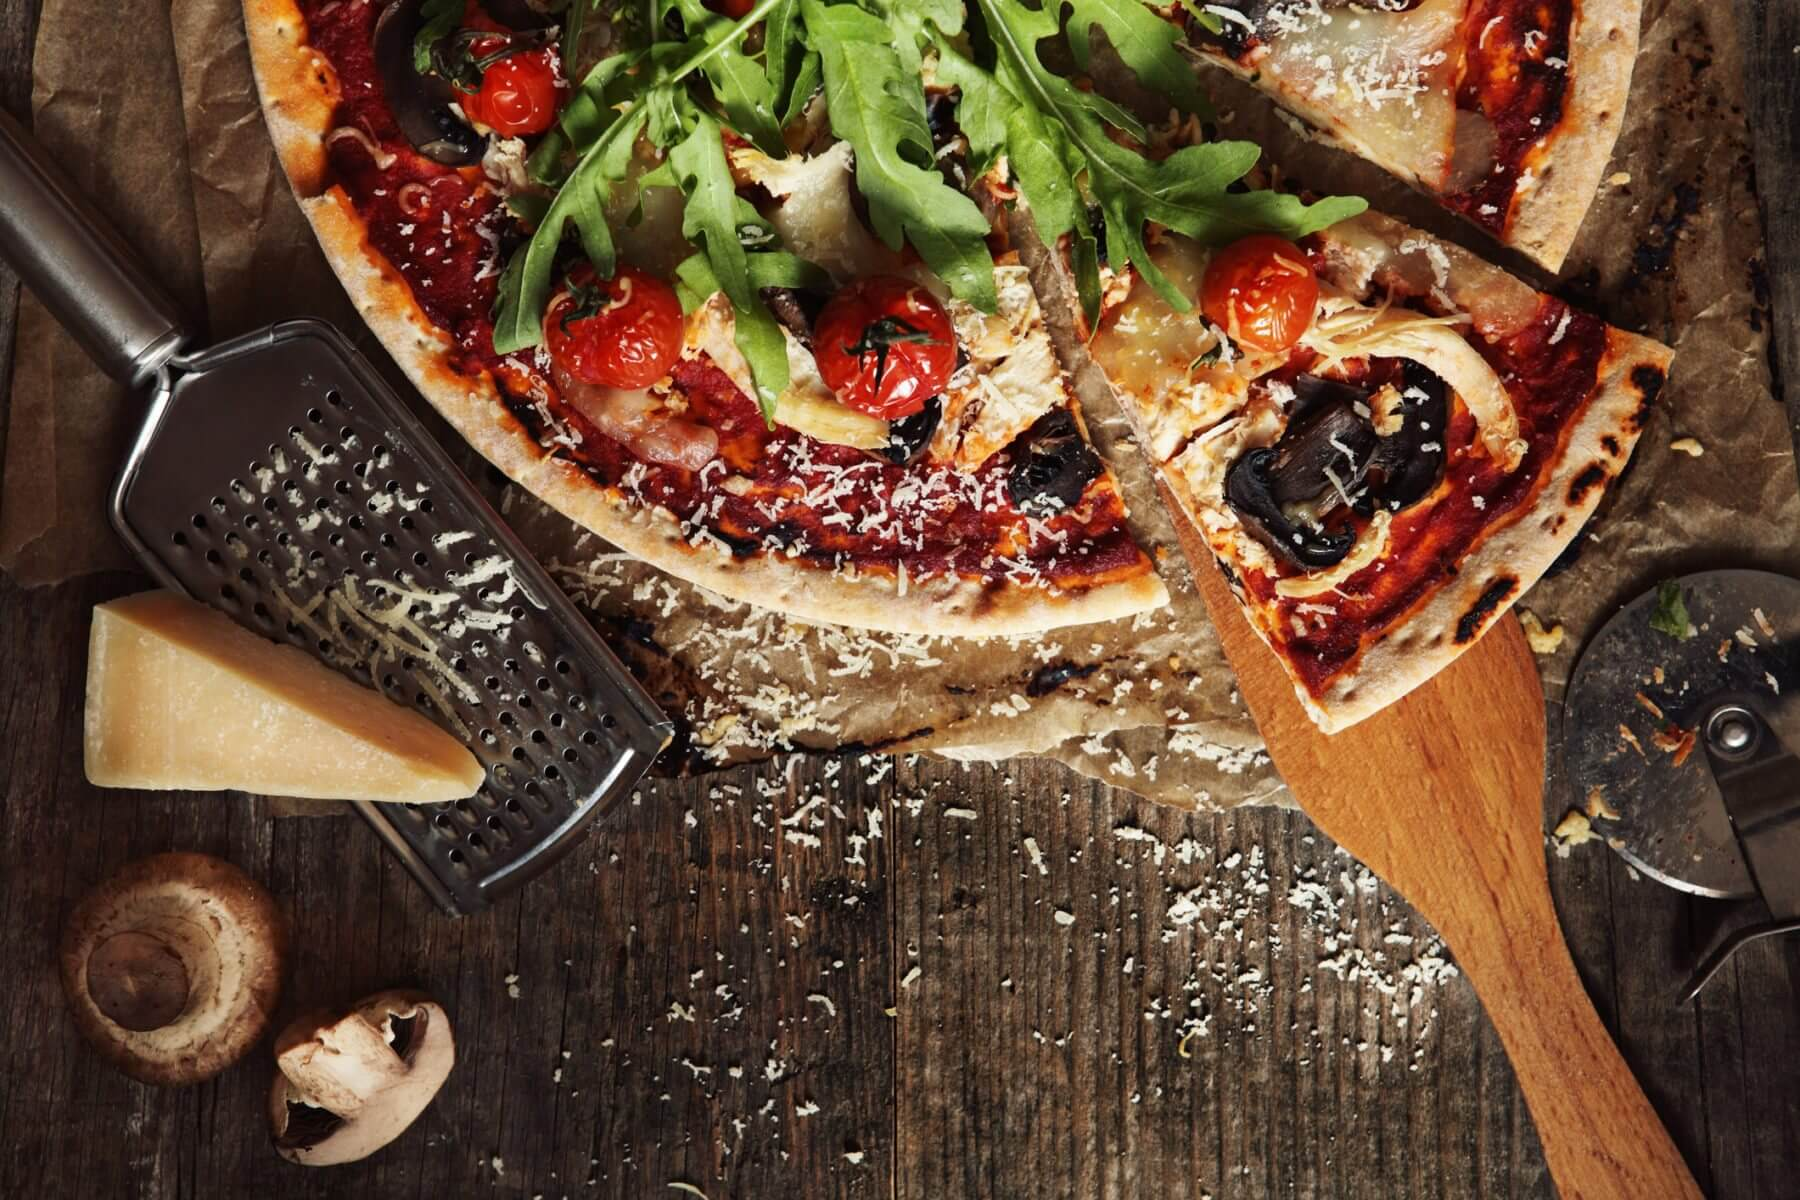 Overhead view of a pizza and ingredients on table